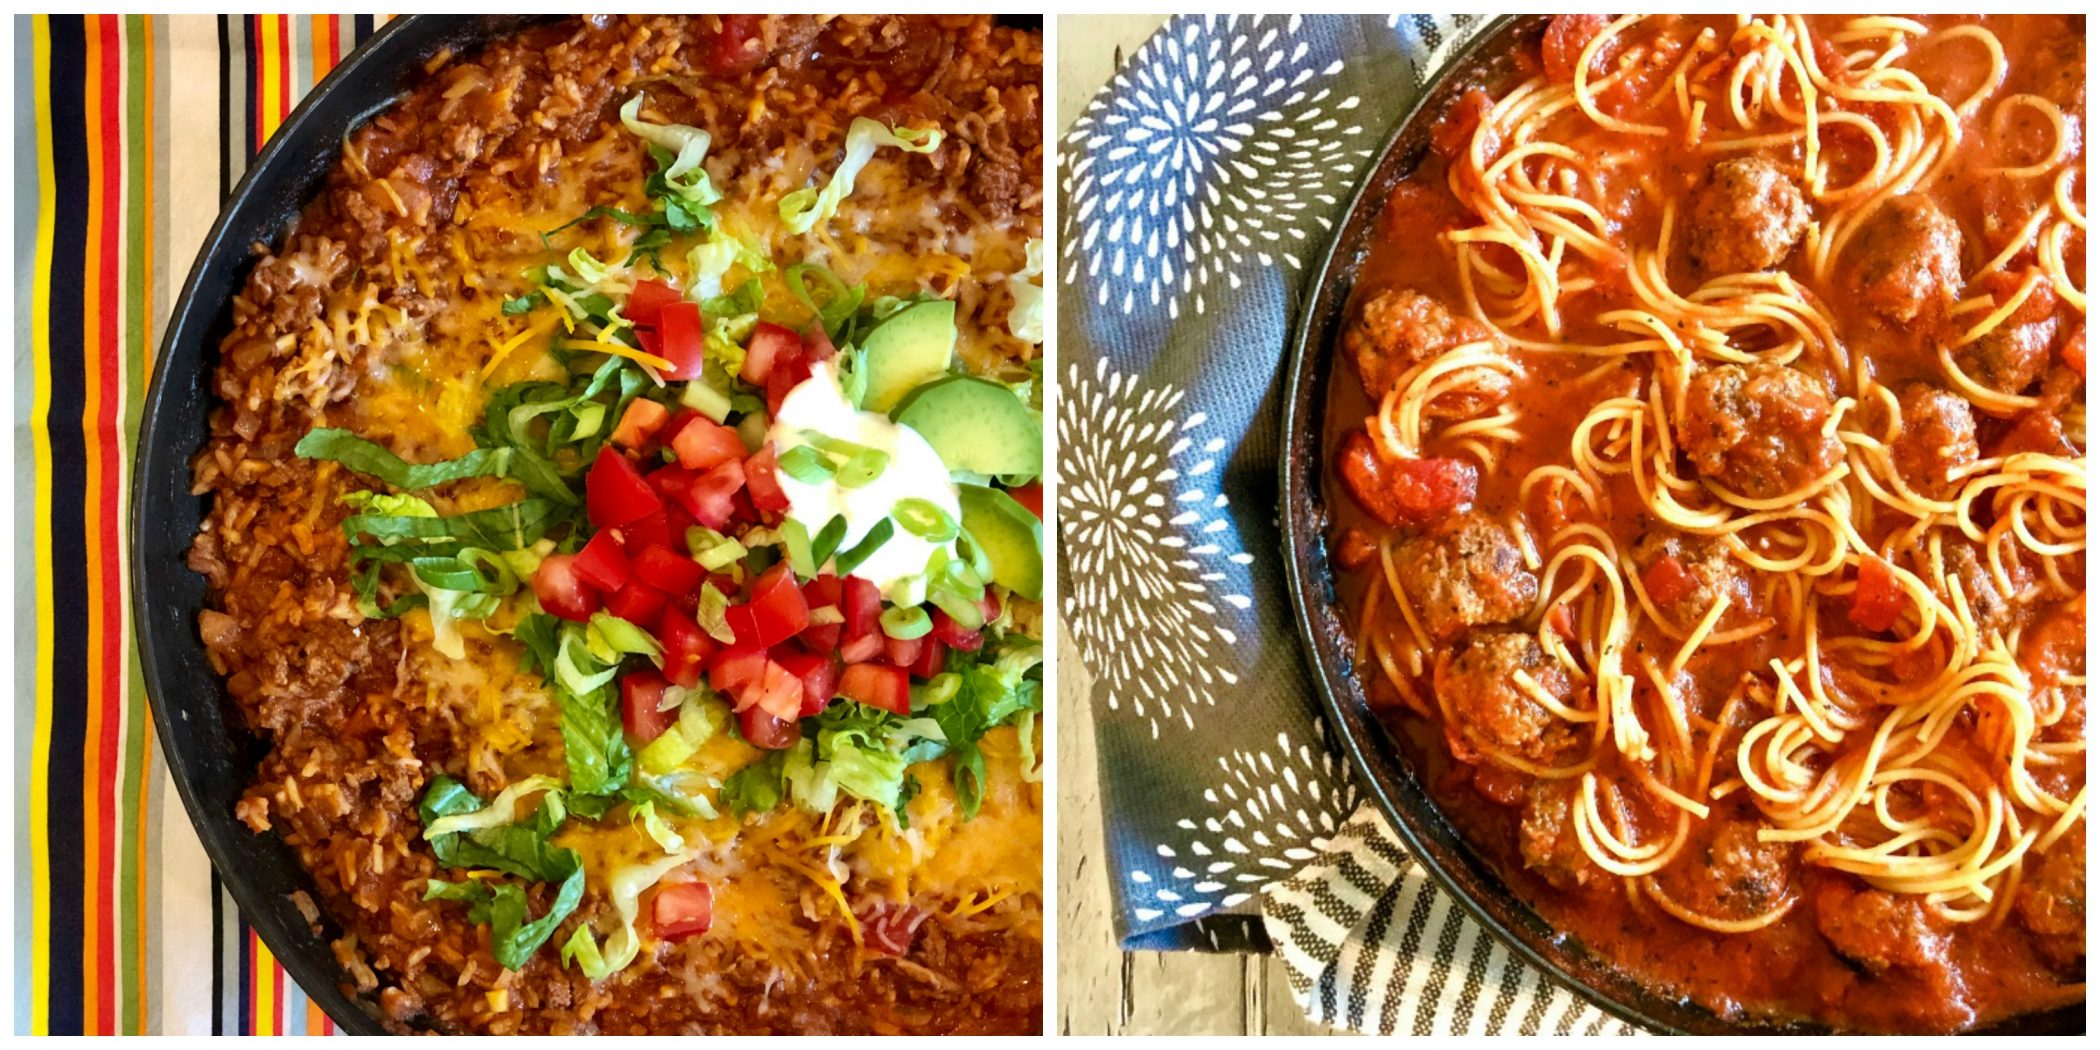 One Pot Taco Beef and One Pot Spaghetti and Meatballs